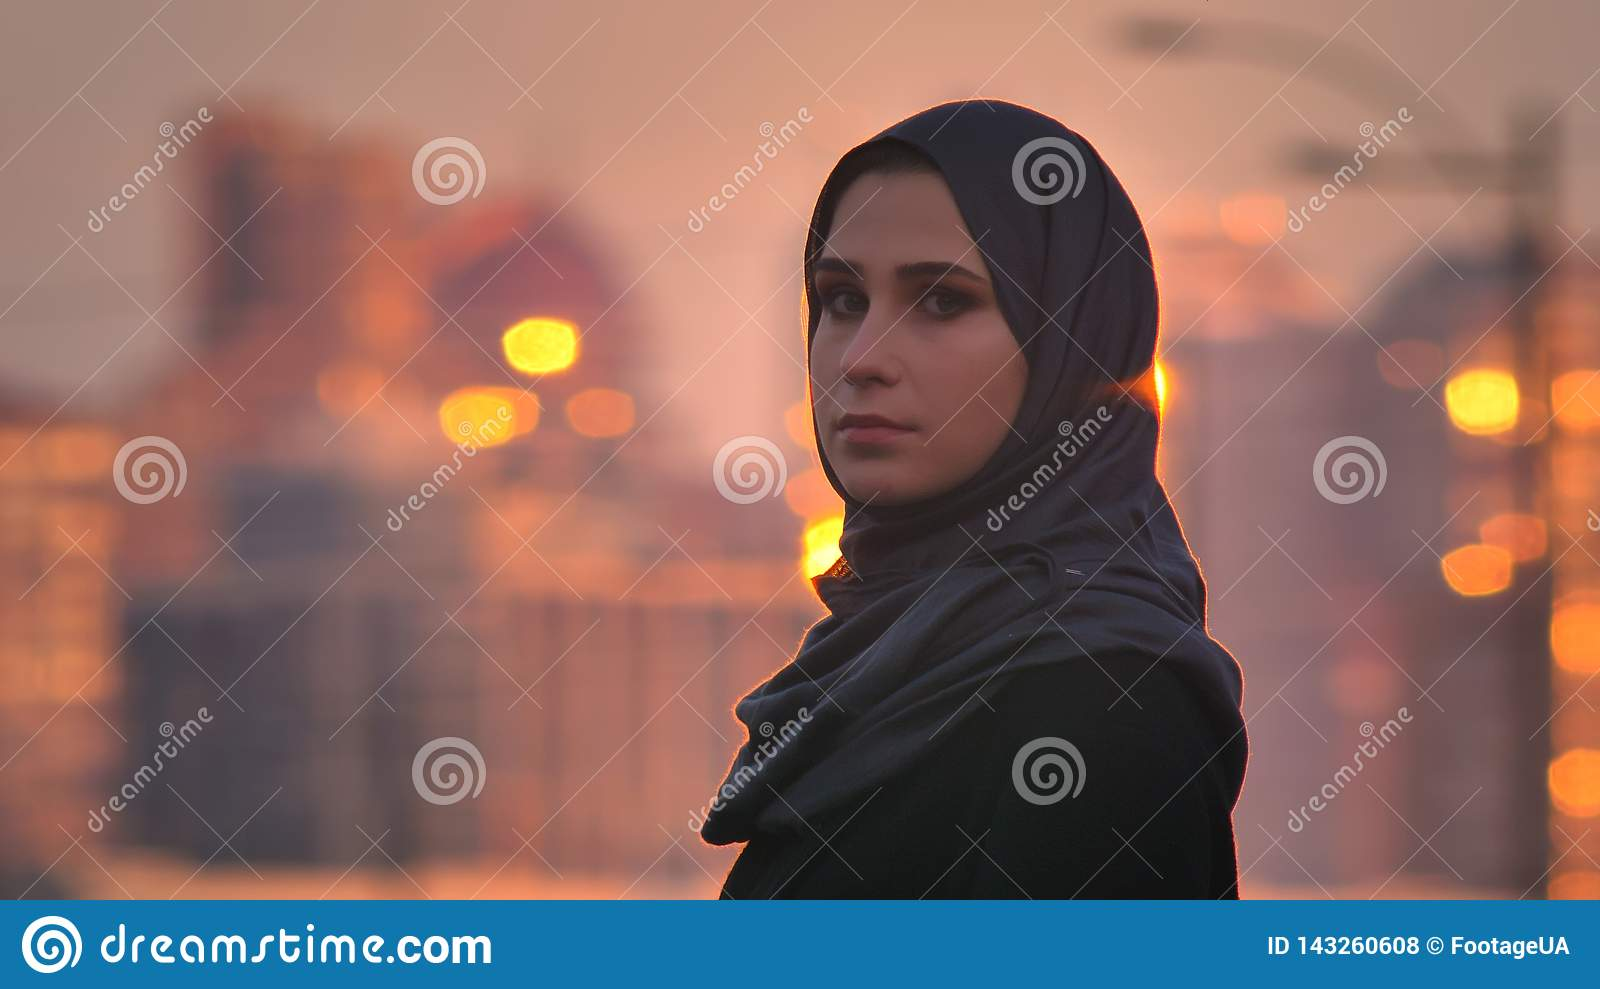 Closeup portrait of young pretty female in hijab turning and looking at camera with shining buildings on the background